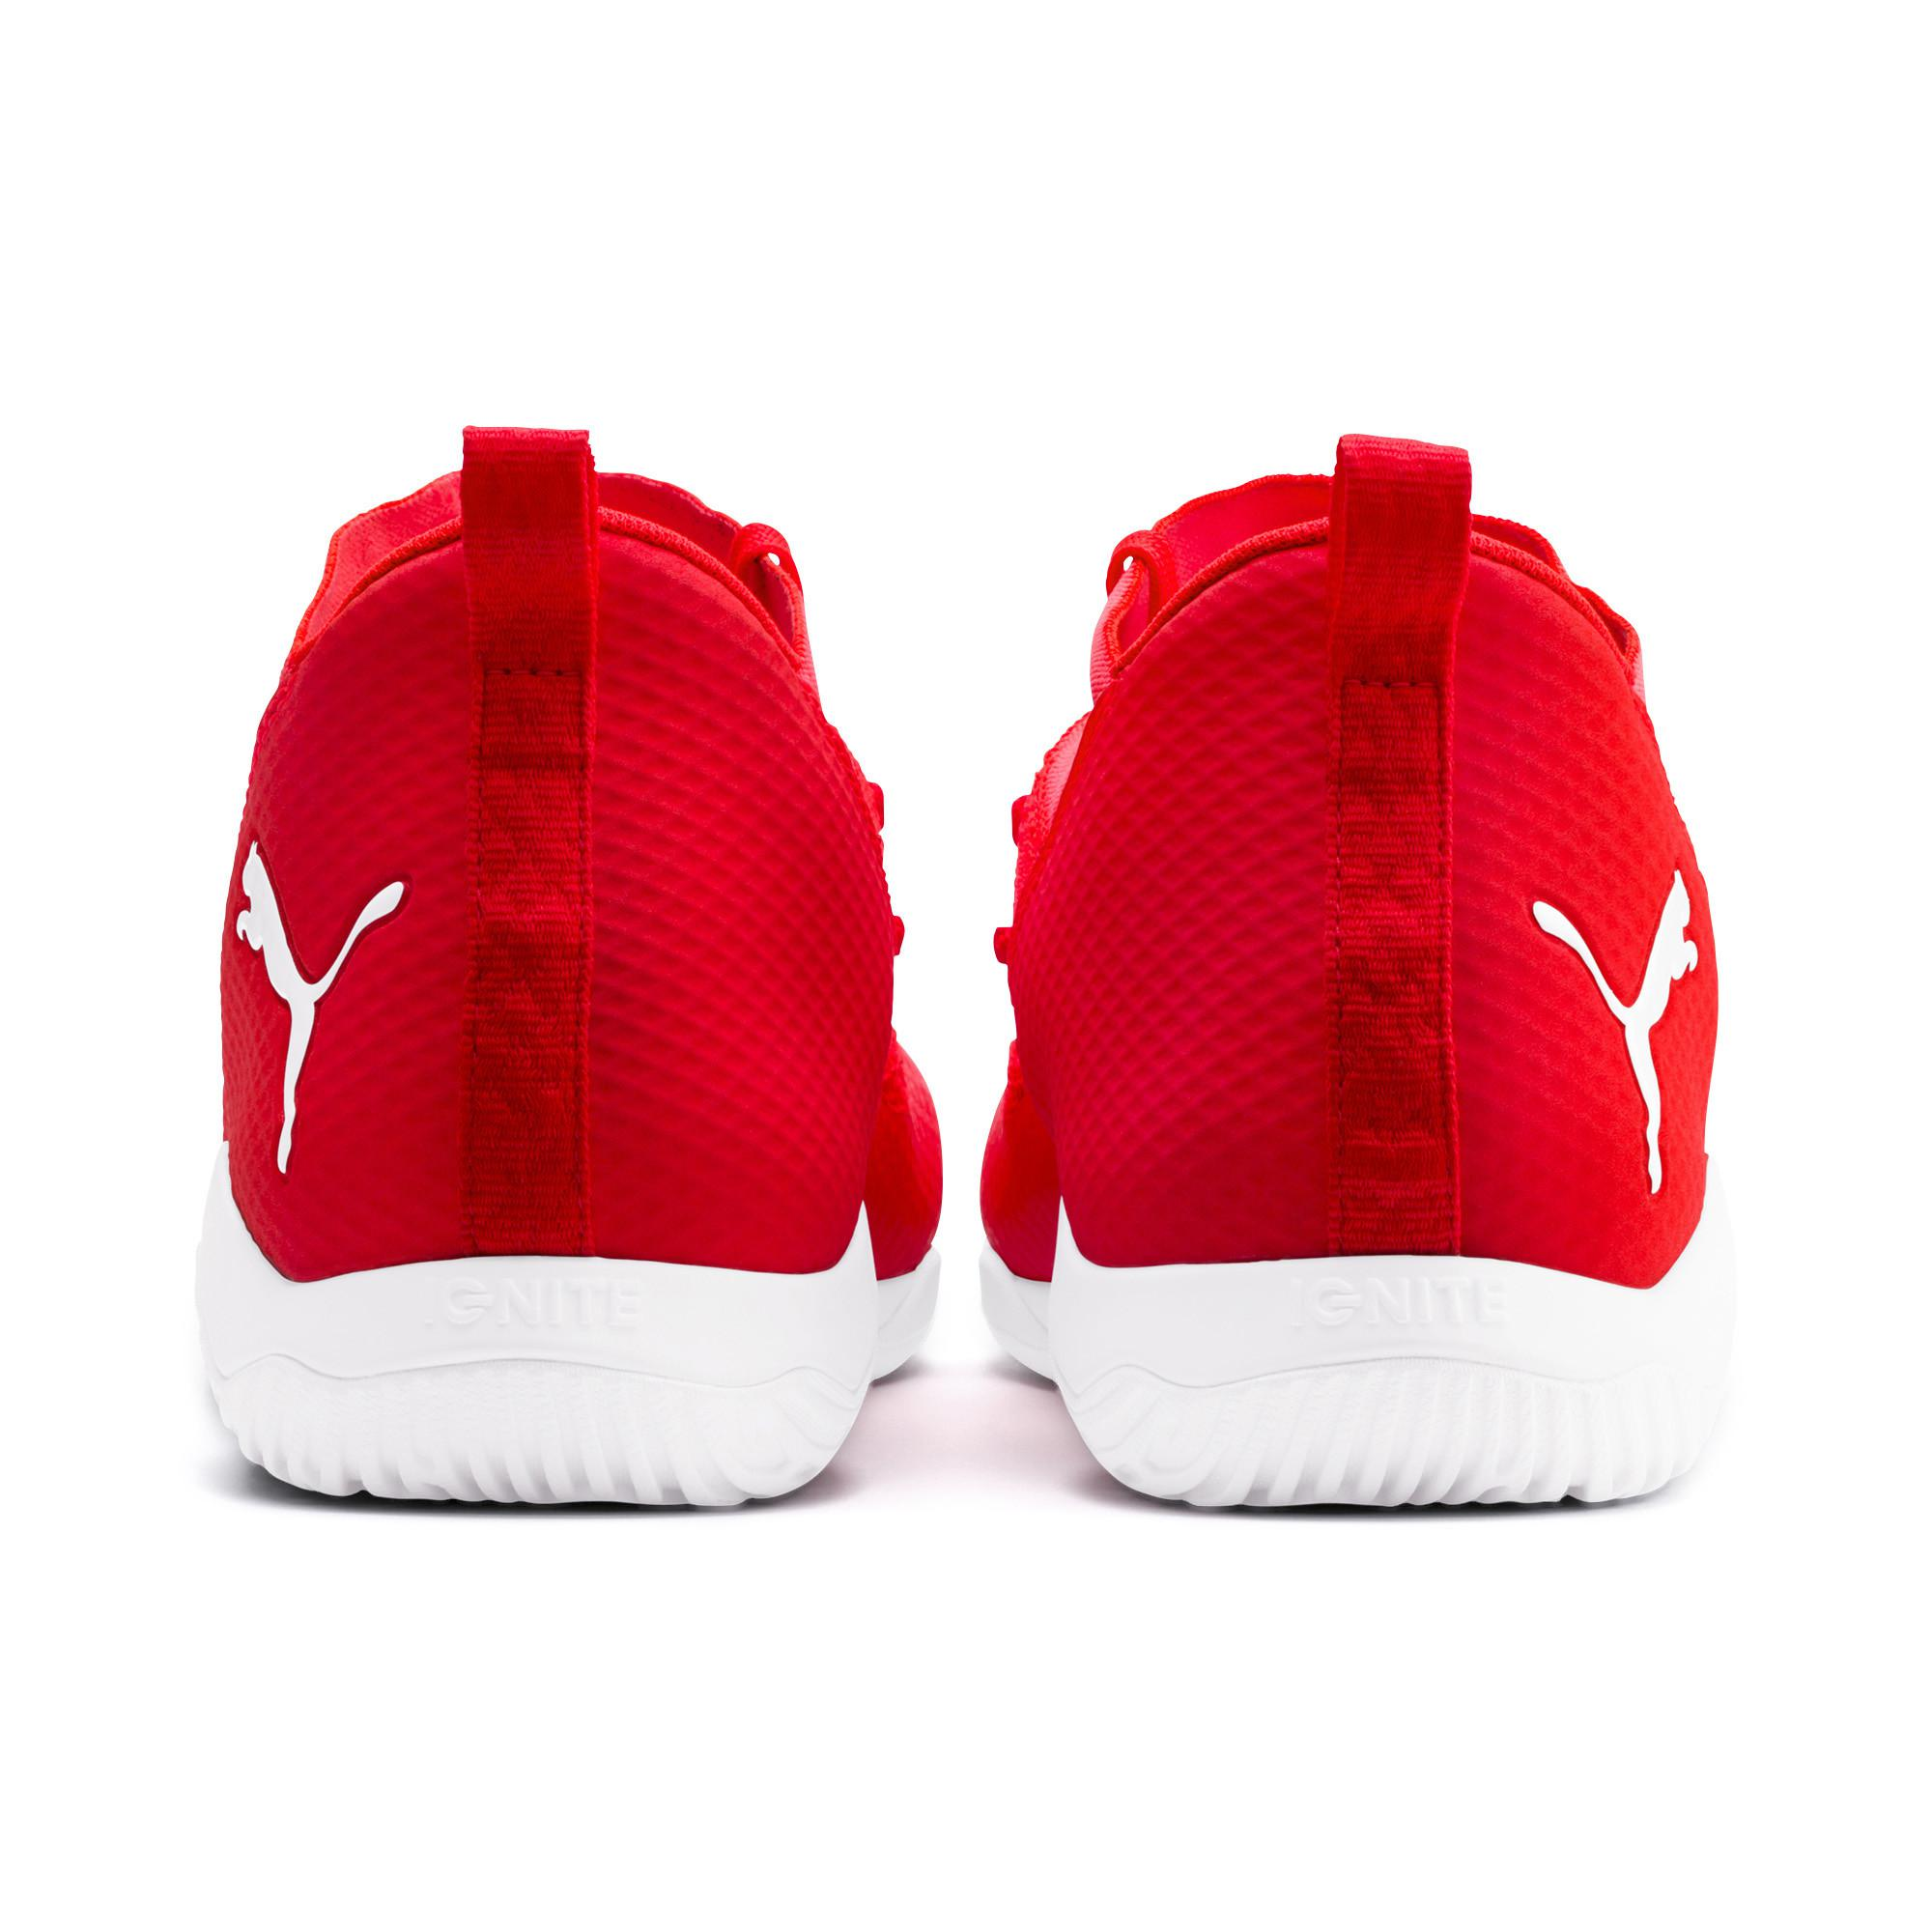 Lyst - PUMA 365 Ignite Fuse 2 Men s Soccer Shoes in Red for Men cad2df033